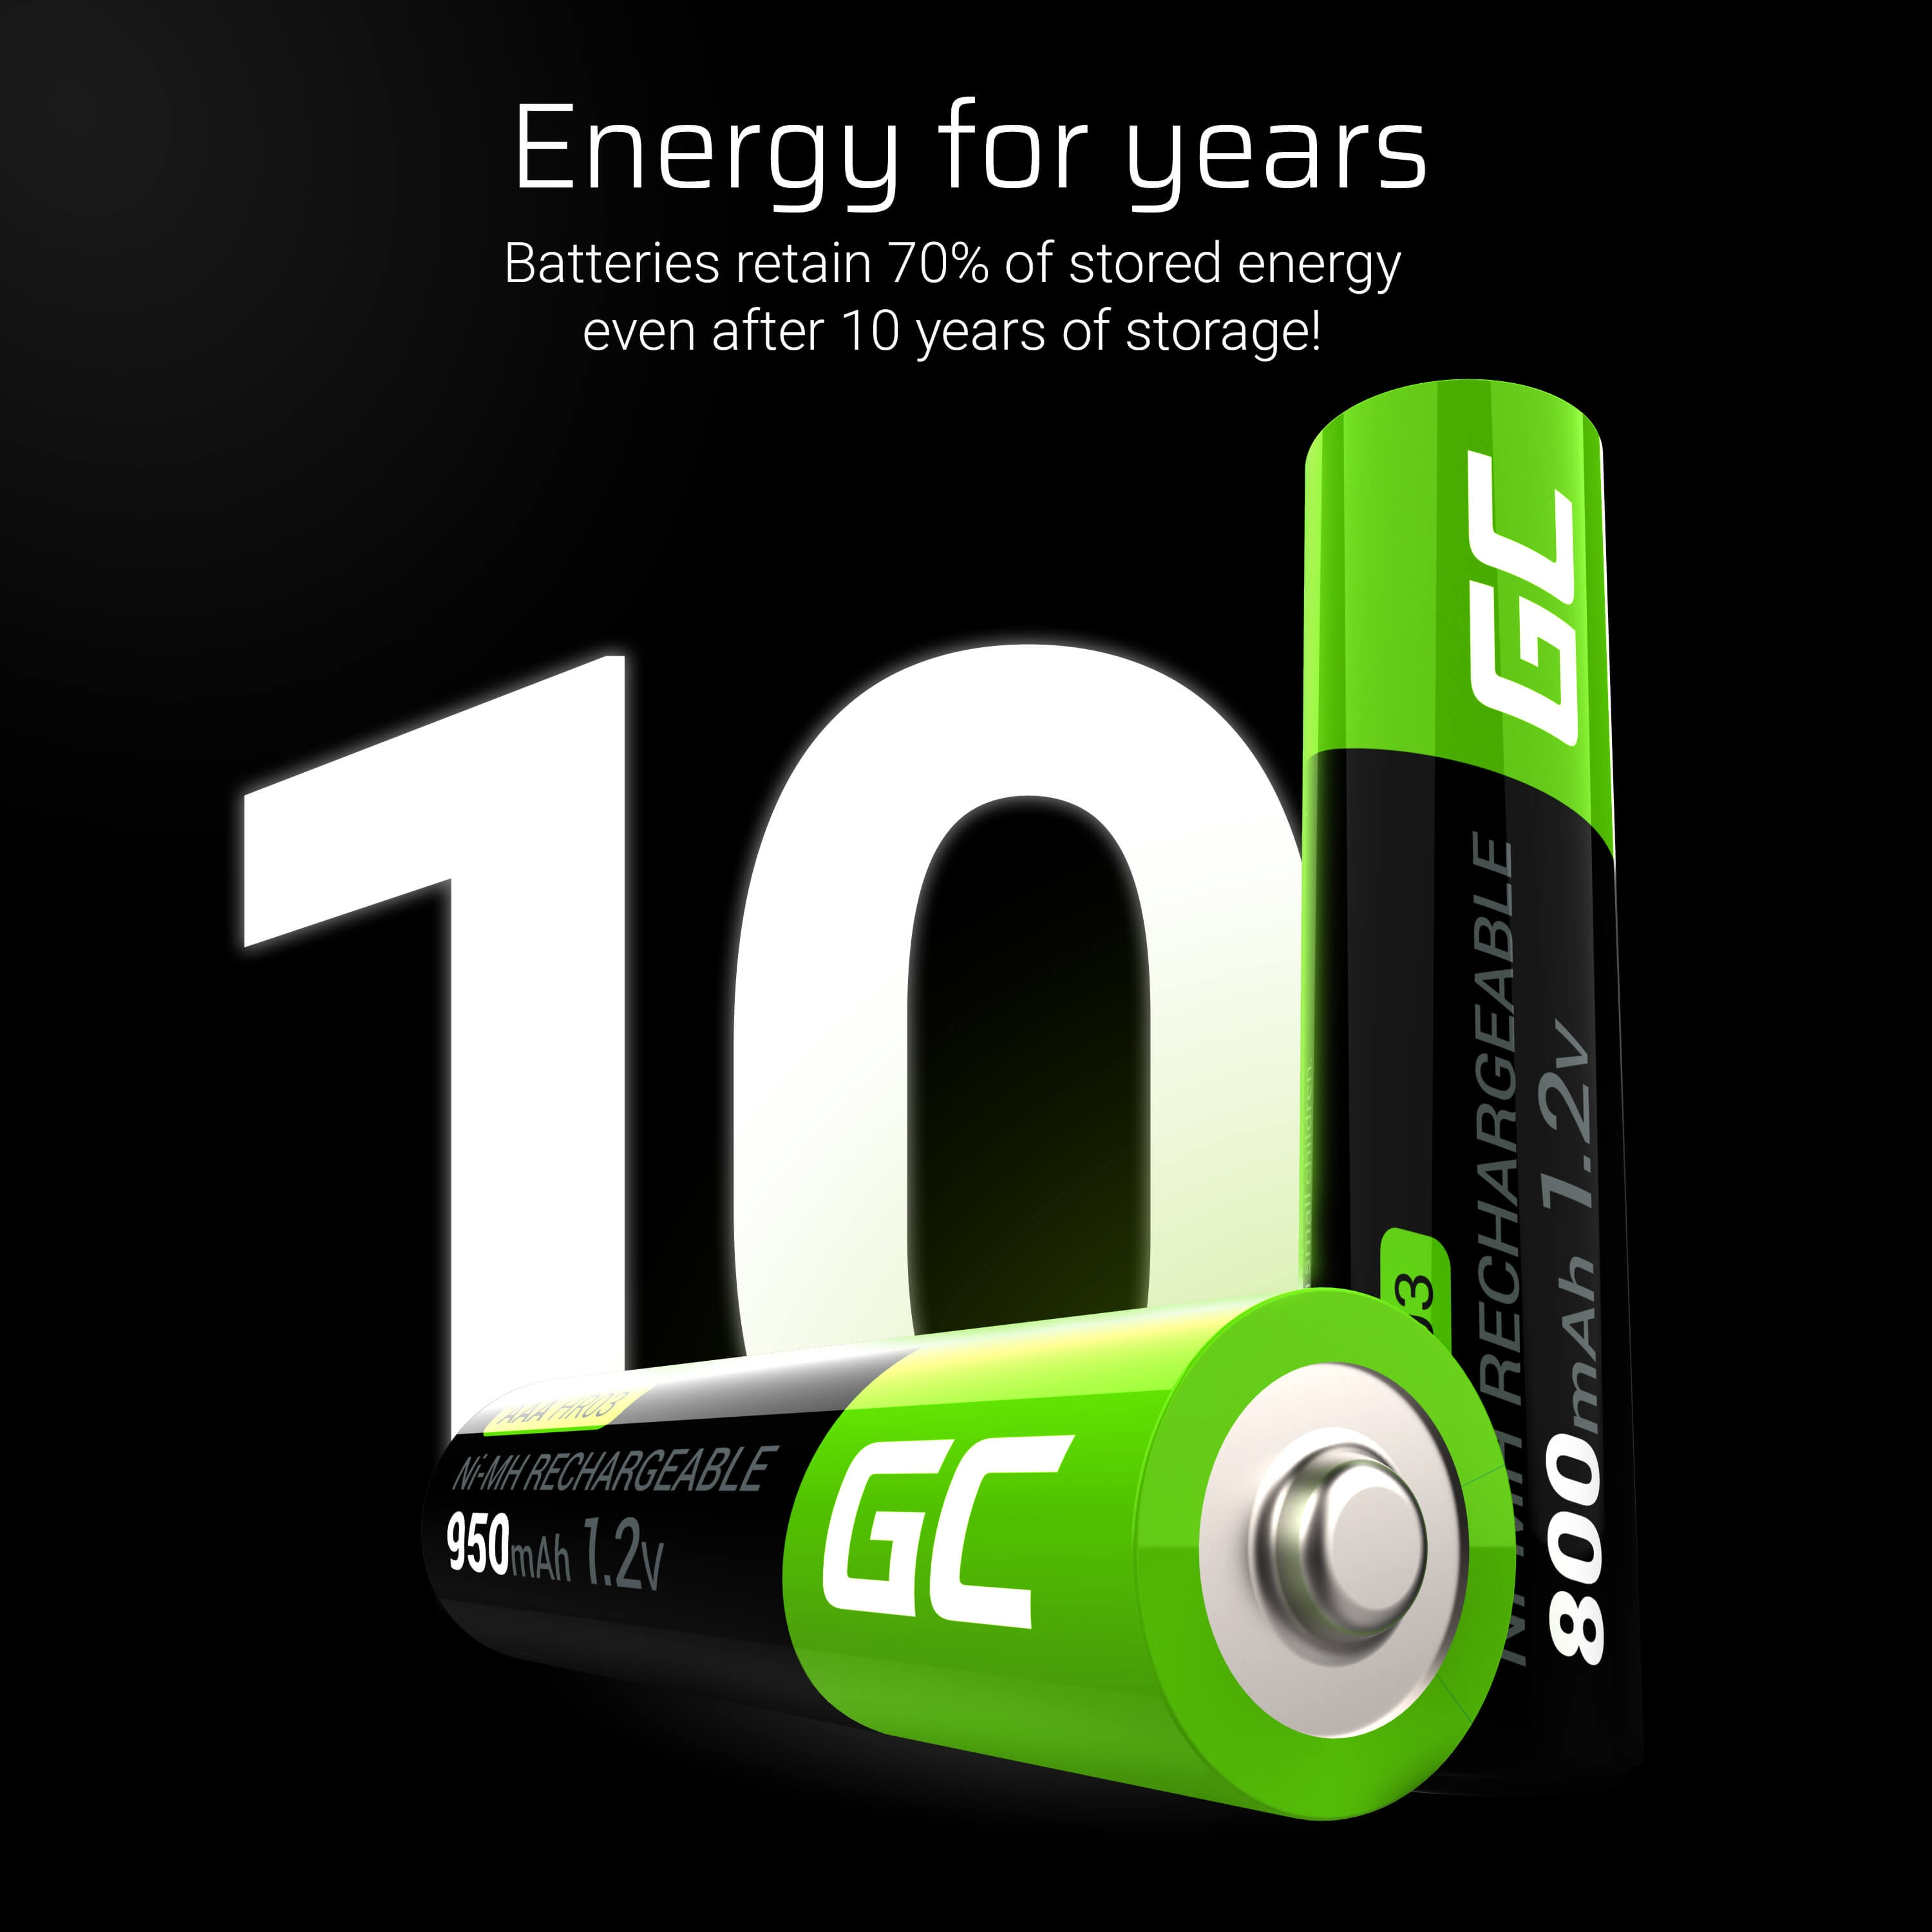 GC® 2x AAA rechargeable batteries HR03 800mAh Green Cell - 6